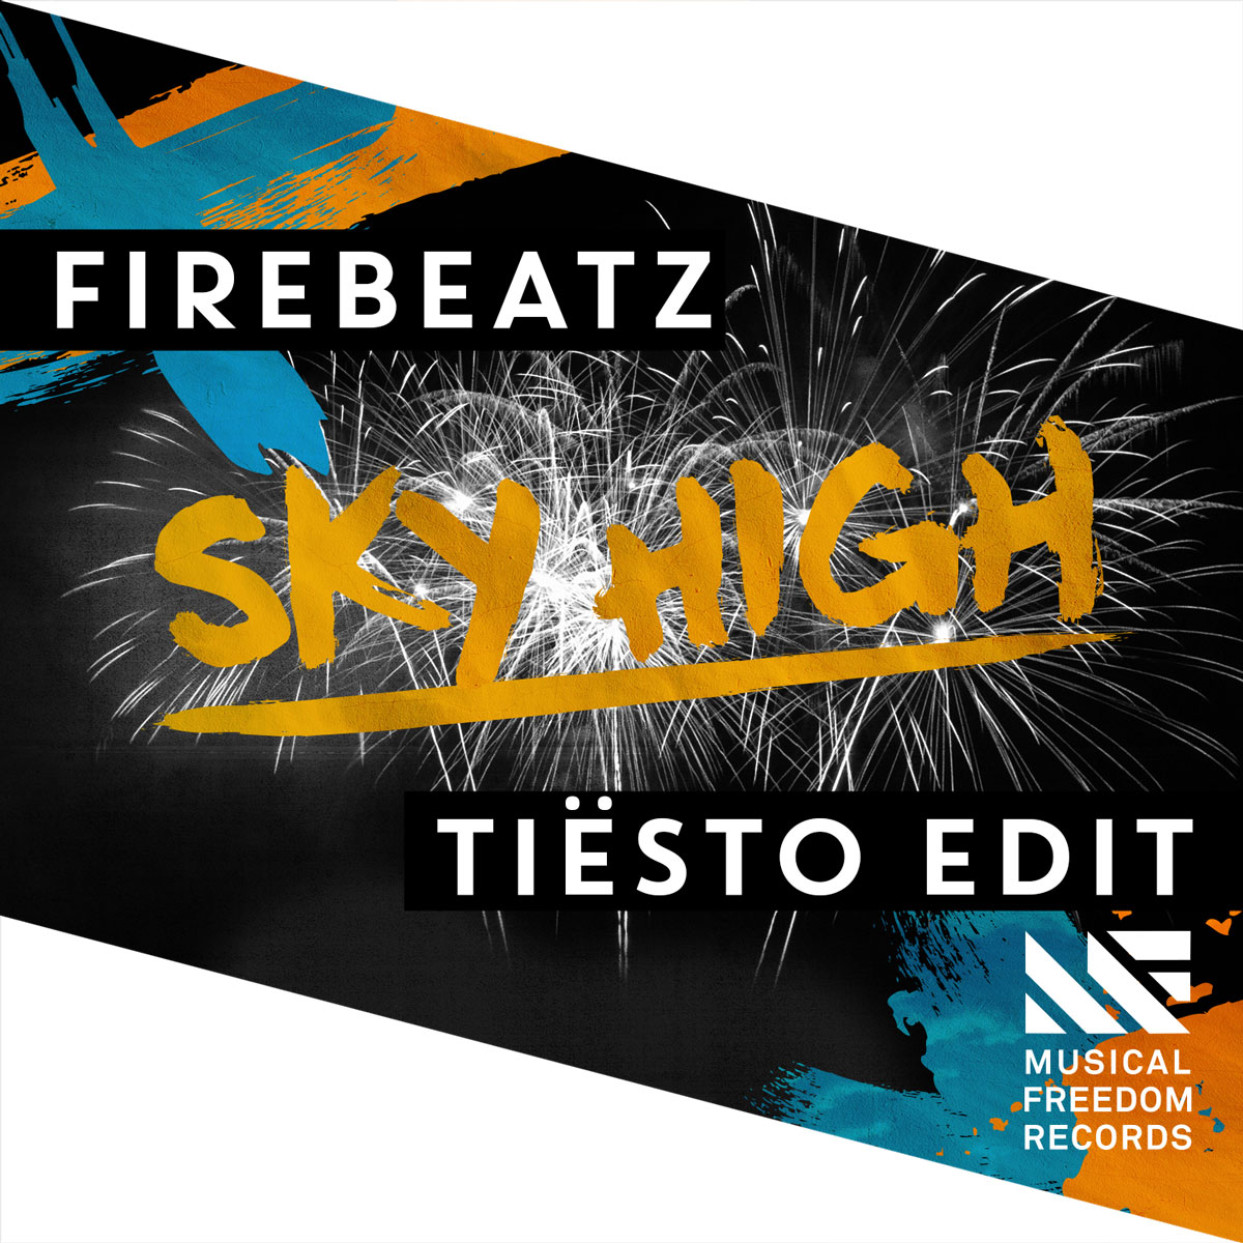 Firebeatz and Tiesto